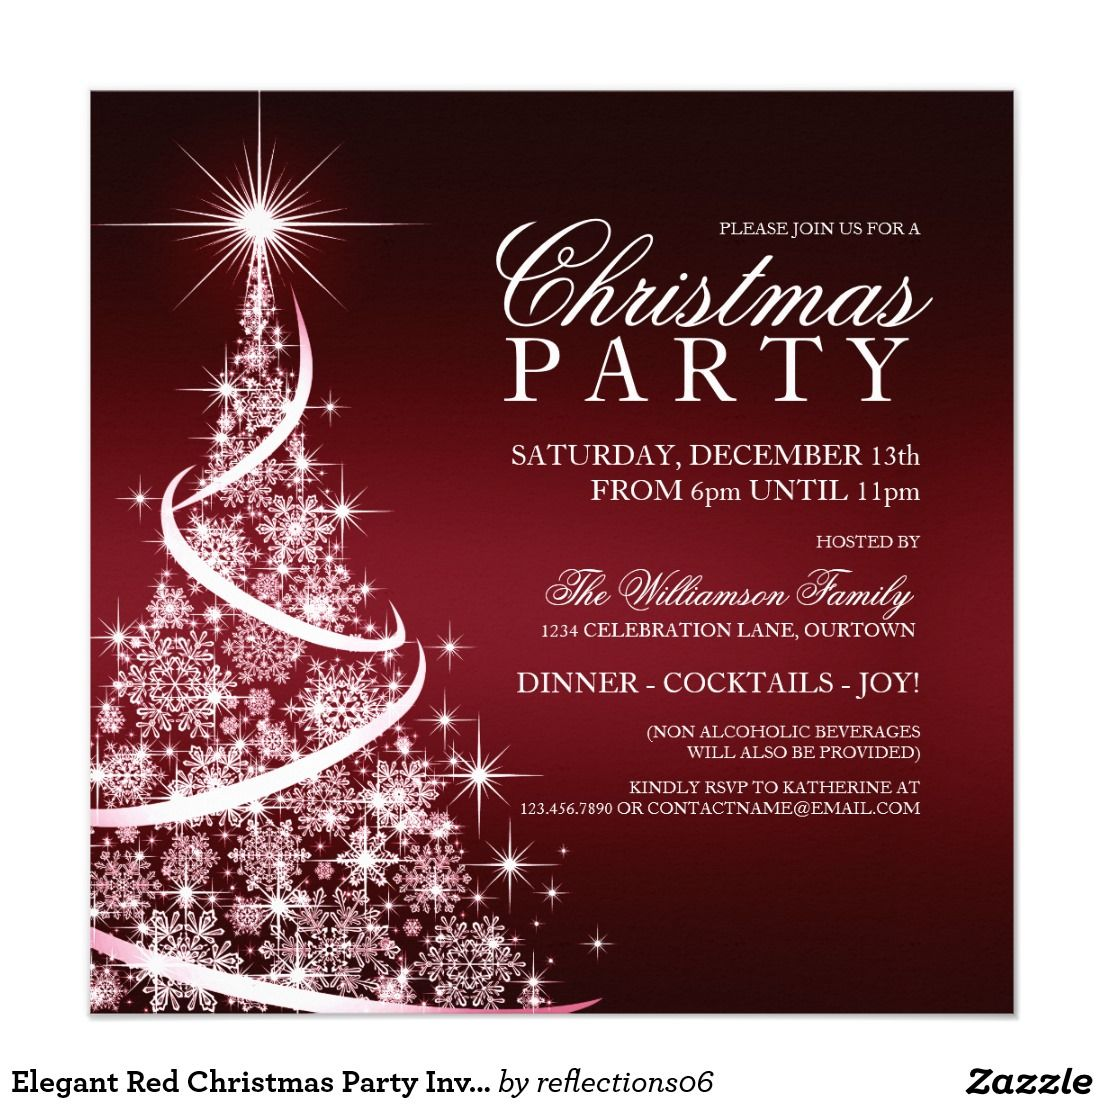 Christmas Holiday Party: Elegant Red Christmas Party Invitation